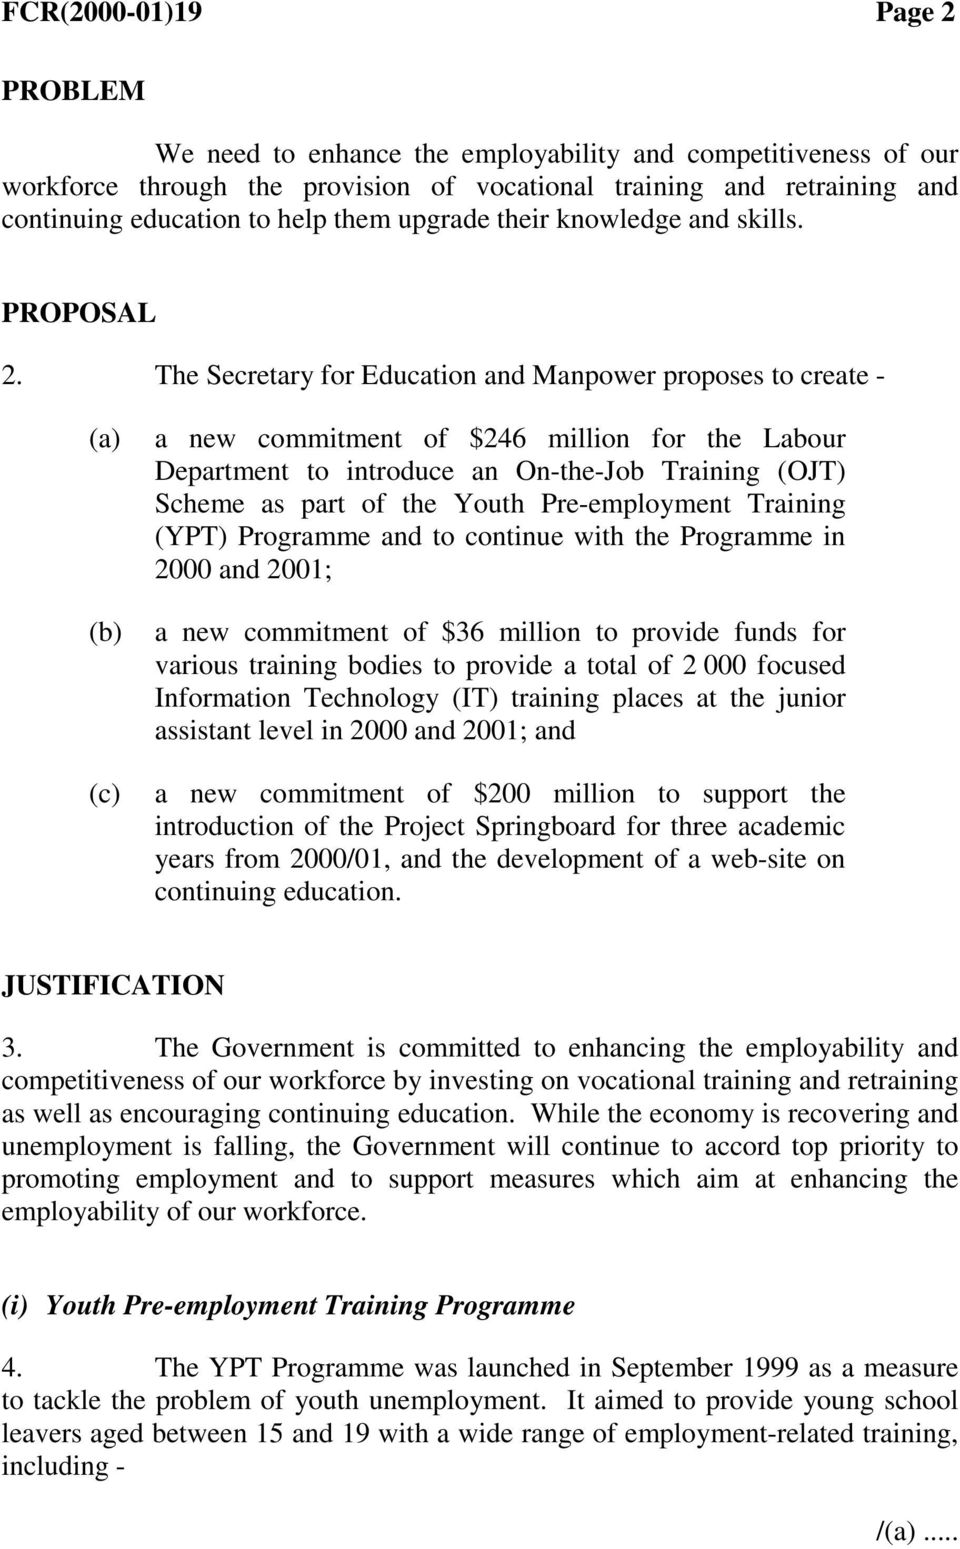 The Secretary for Education and Manpower proposes to create - a new commitment of $246 million for the Labour Department to introduce an On-the-Job Training (OJT) Scheme as part of the Youth